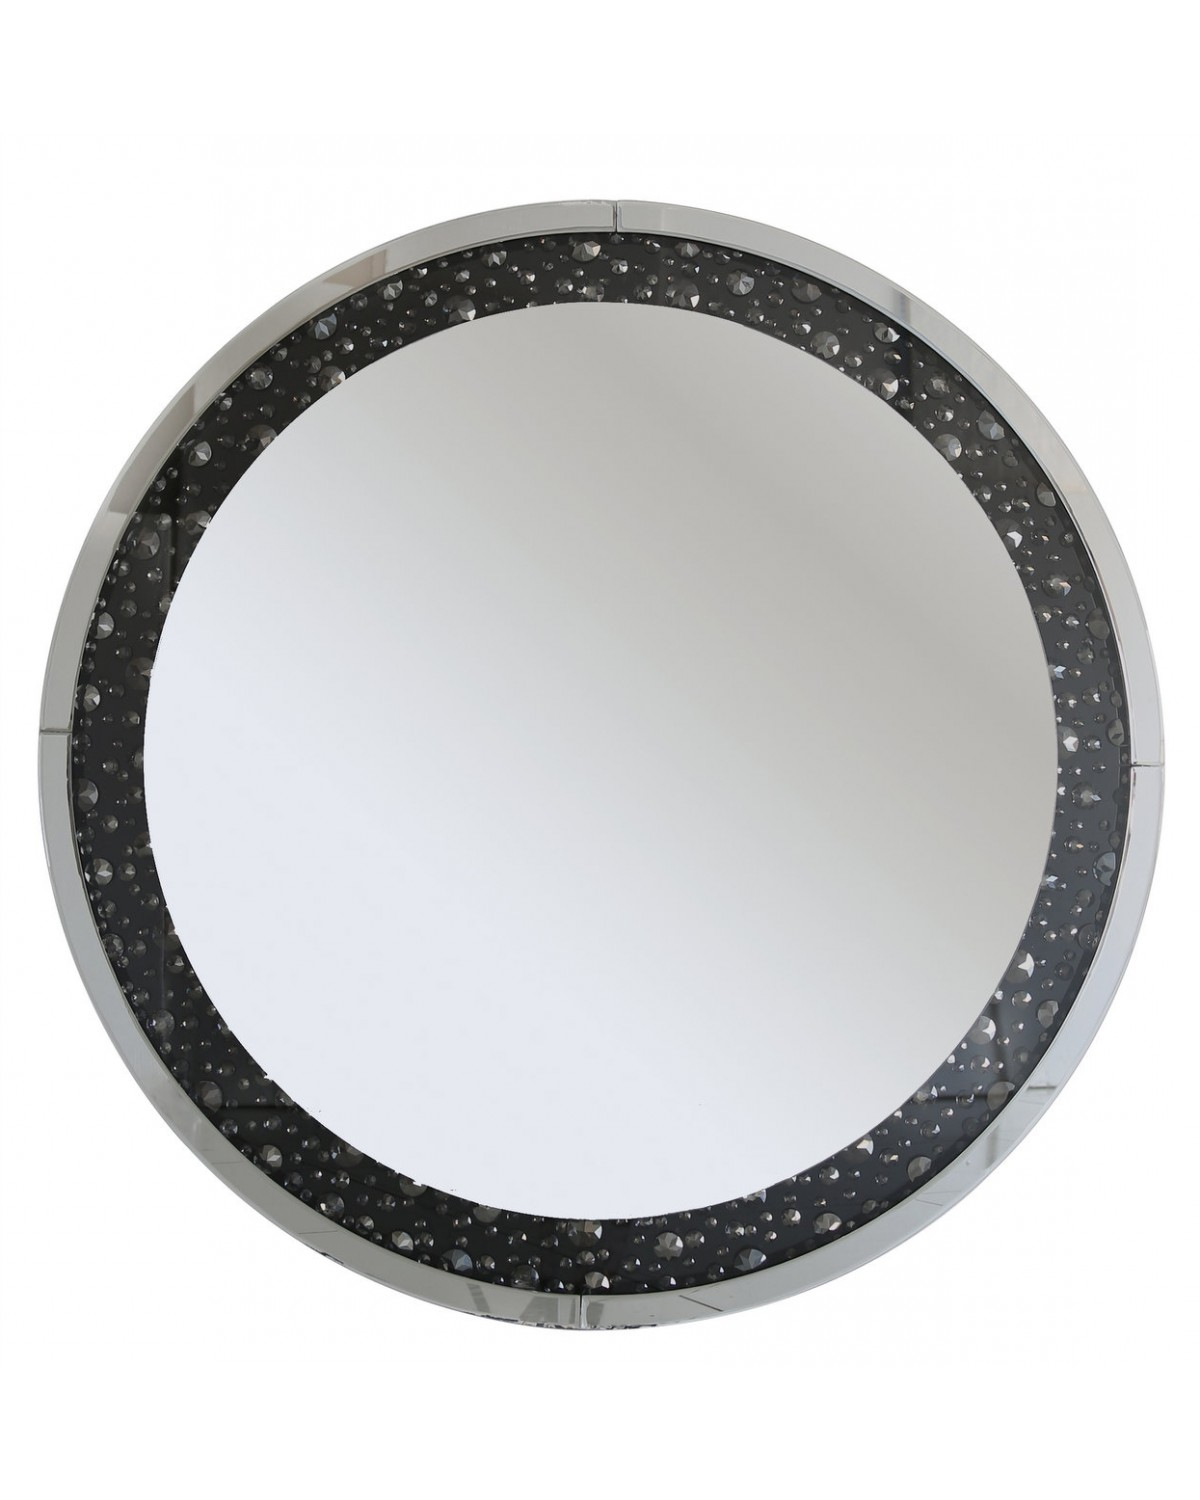 Cimc Home Pertaining To Recent Round Black Wall Mirrors (View 8 of 20)